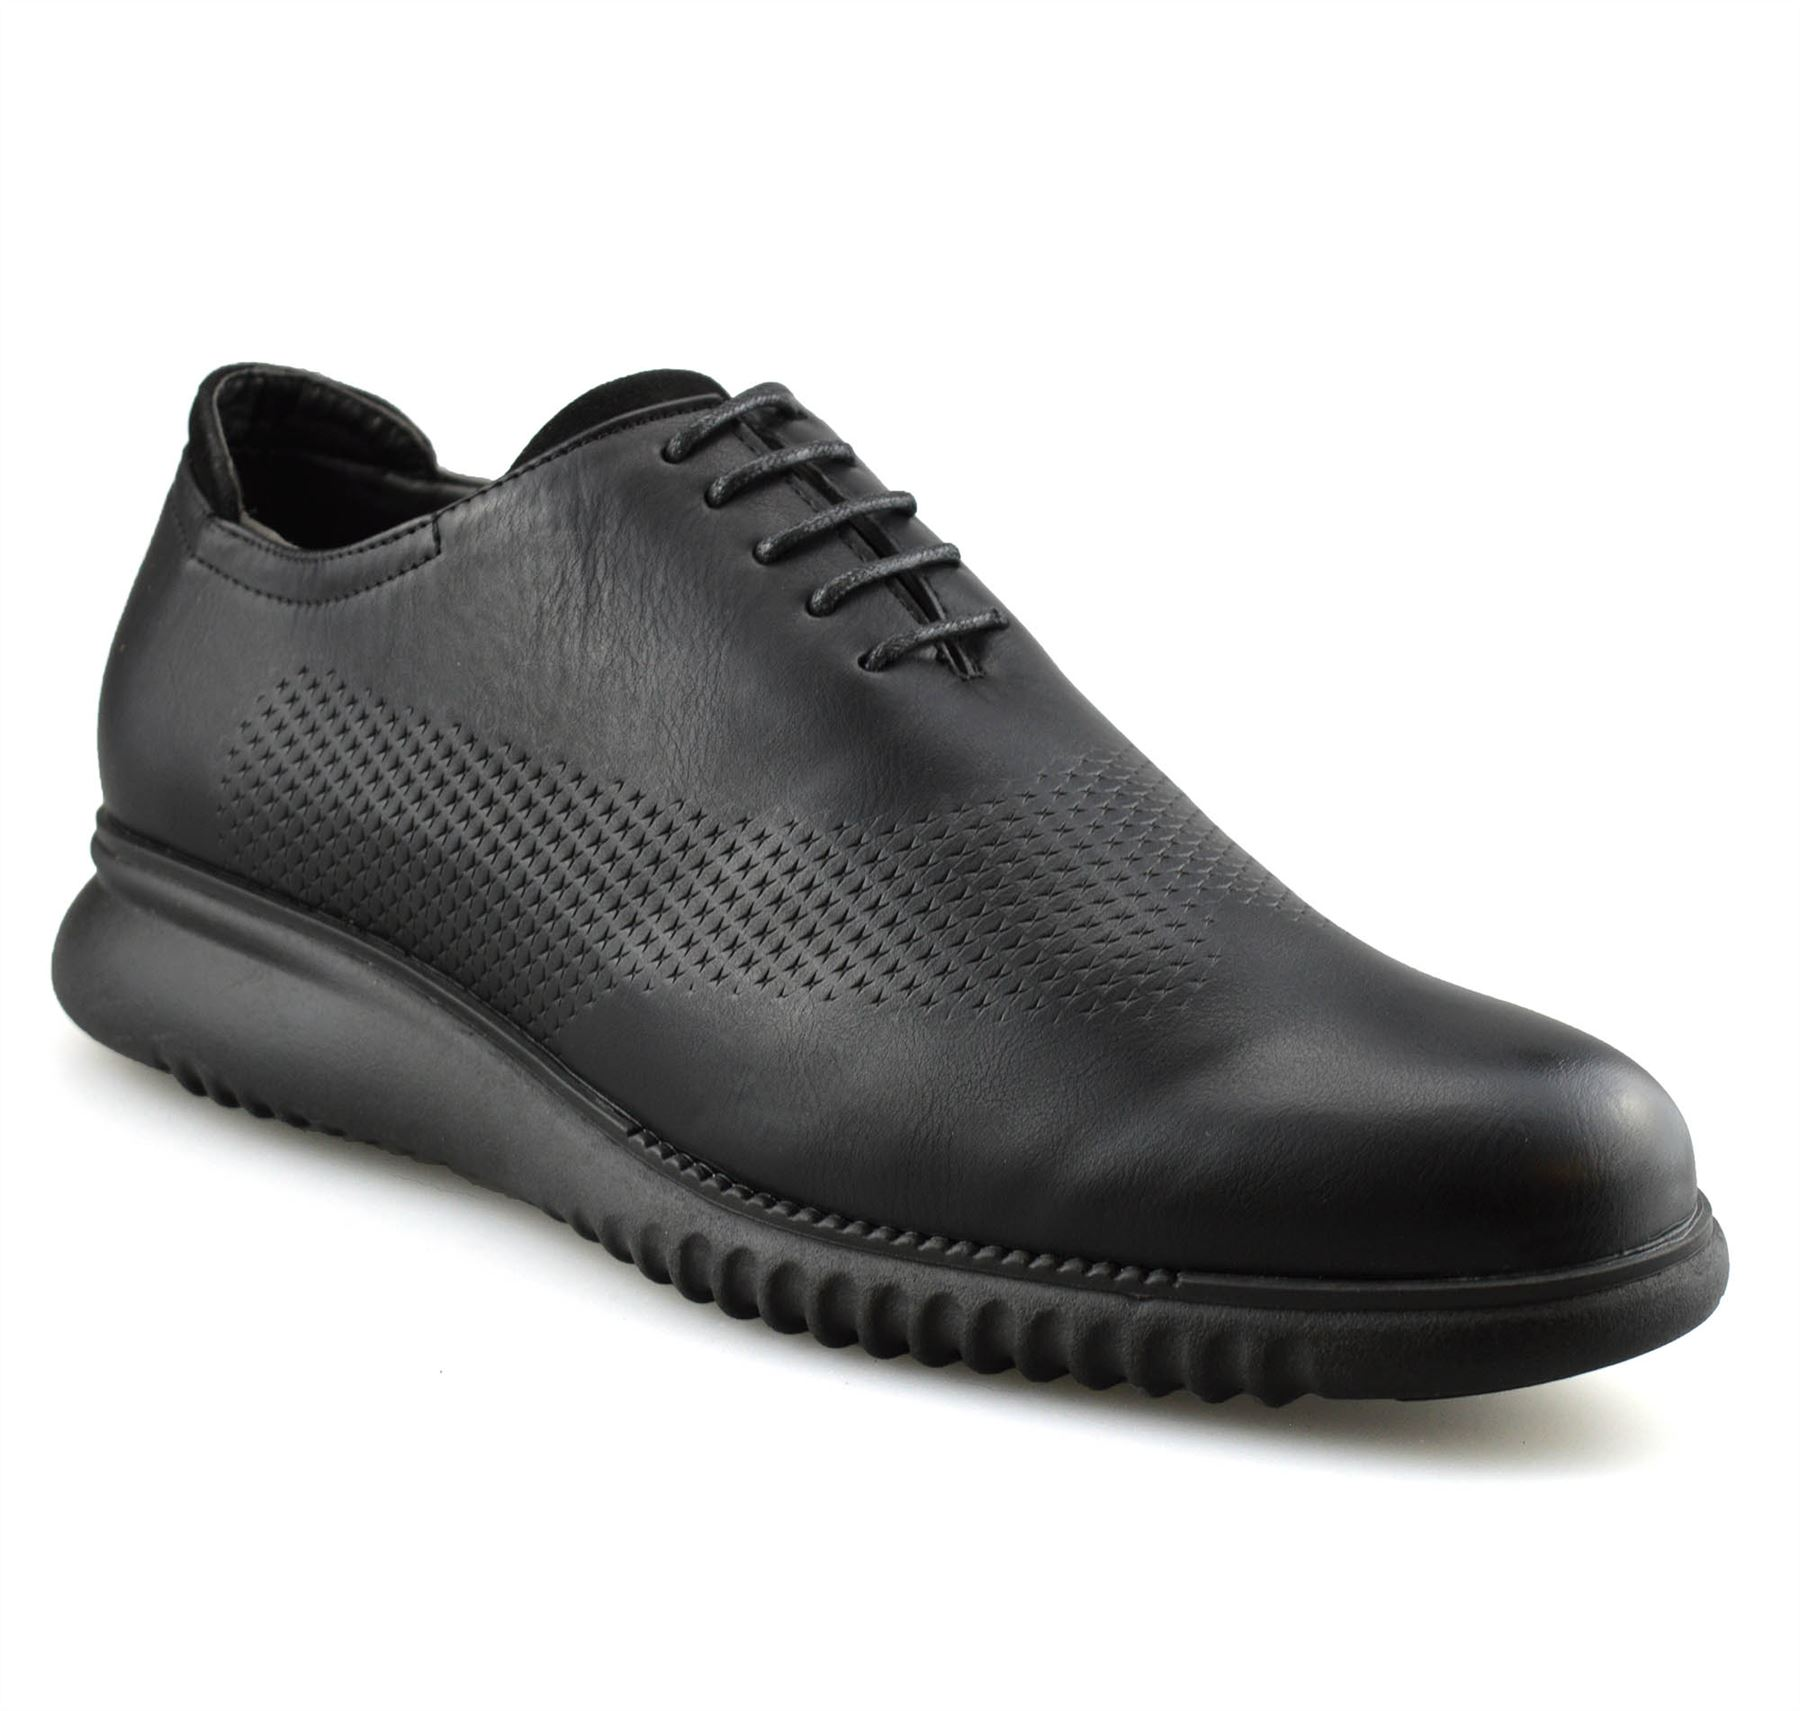 Mens-Casual-Smart-Lace-Up-Oxford-Brogue-Walking-Work-Office-Trainers-Shoes-Size thumbnail 13